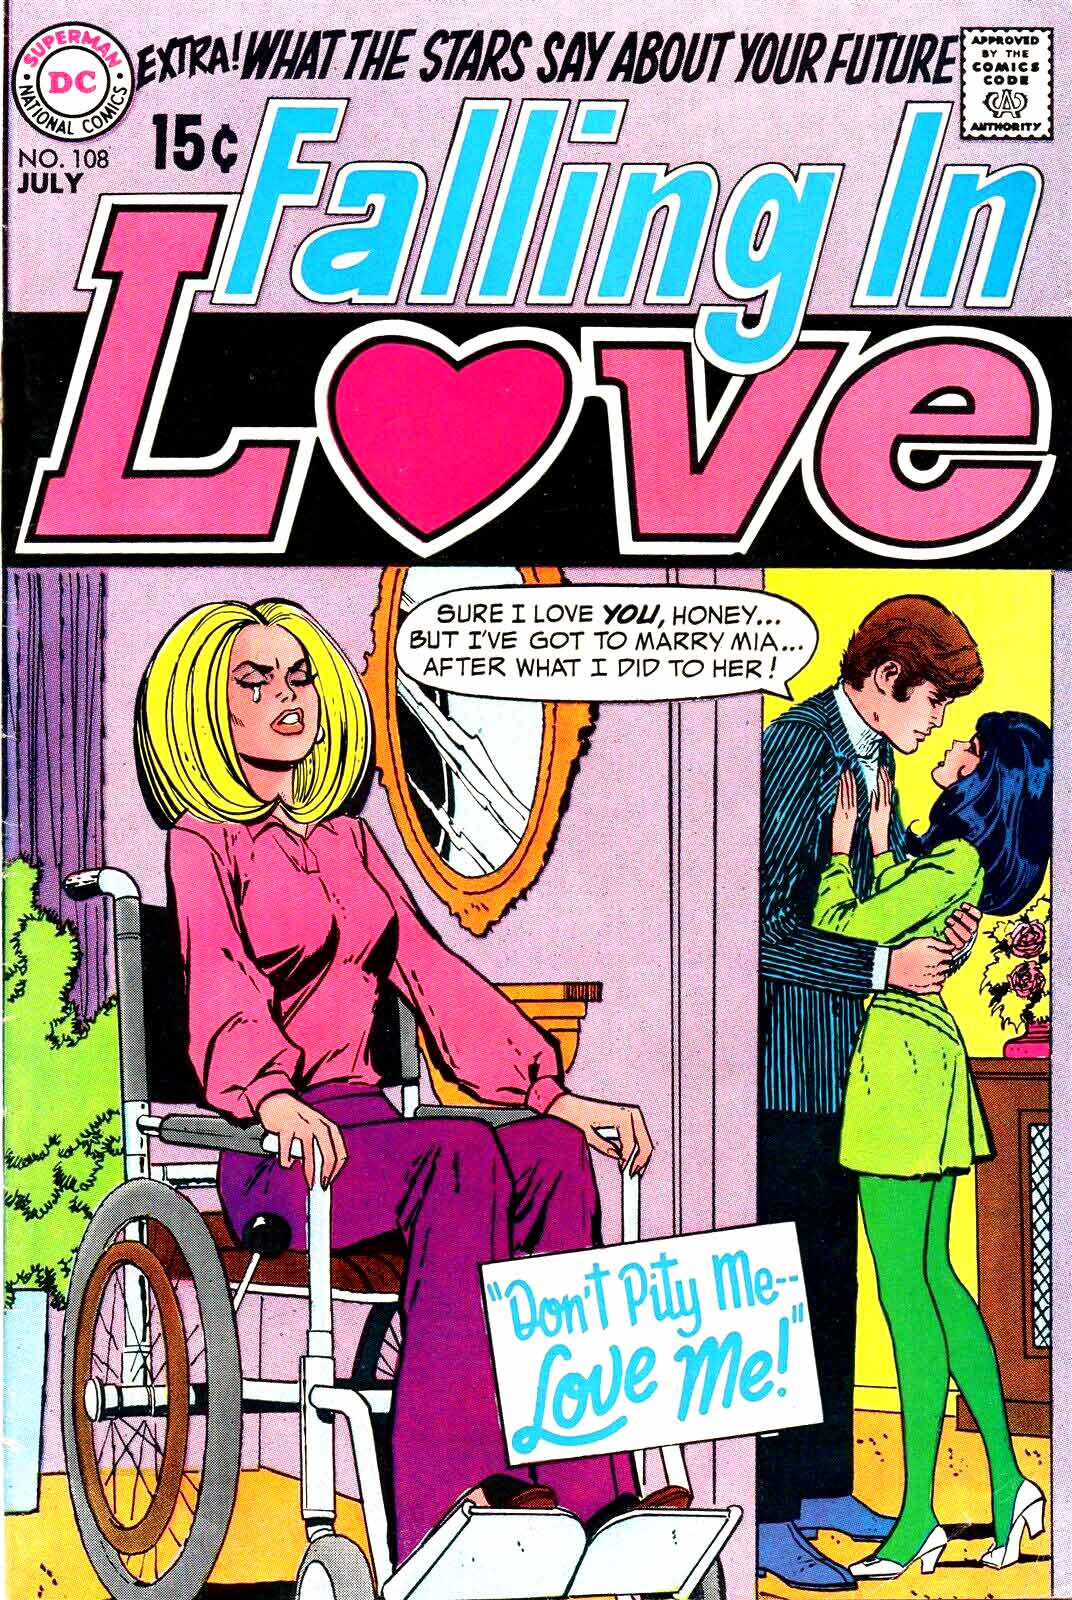 The Write Time to Love, Wood story inks (Ric Estrada pencils) 1969.